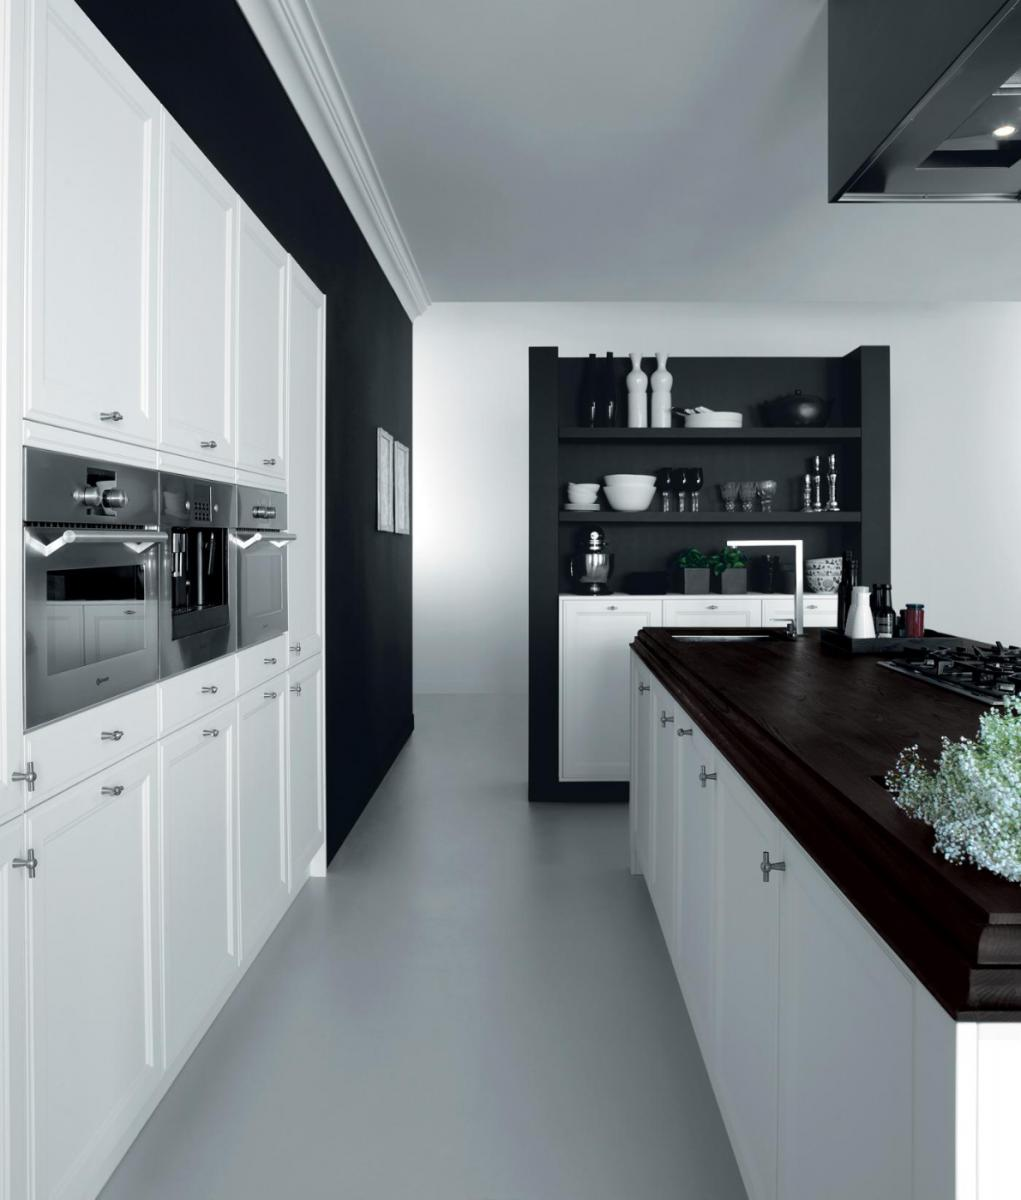 detail shot of modern kitchen fi